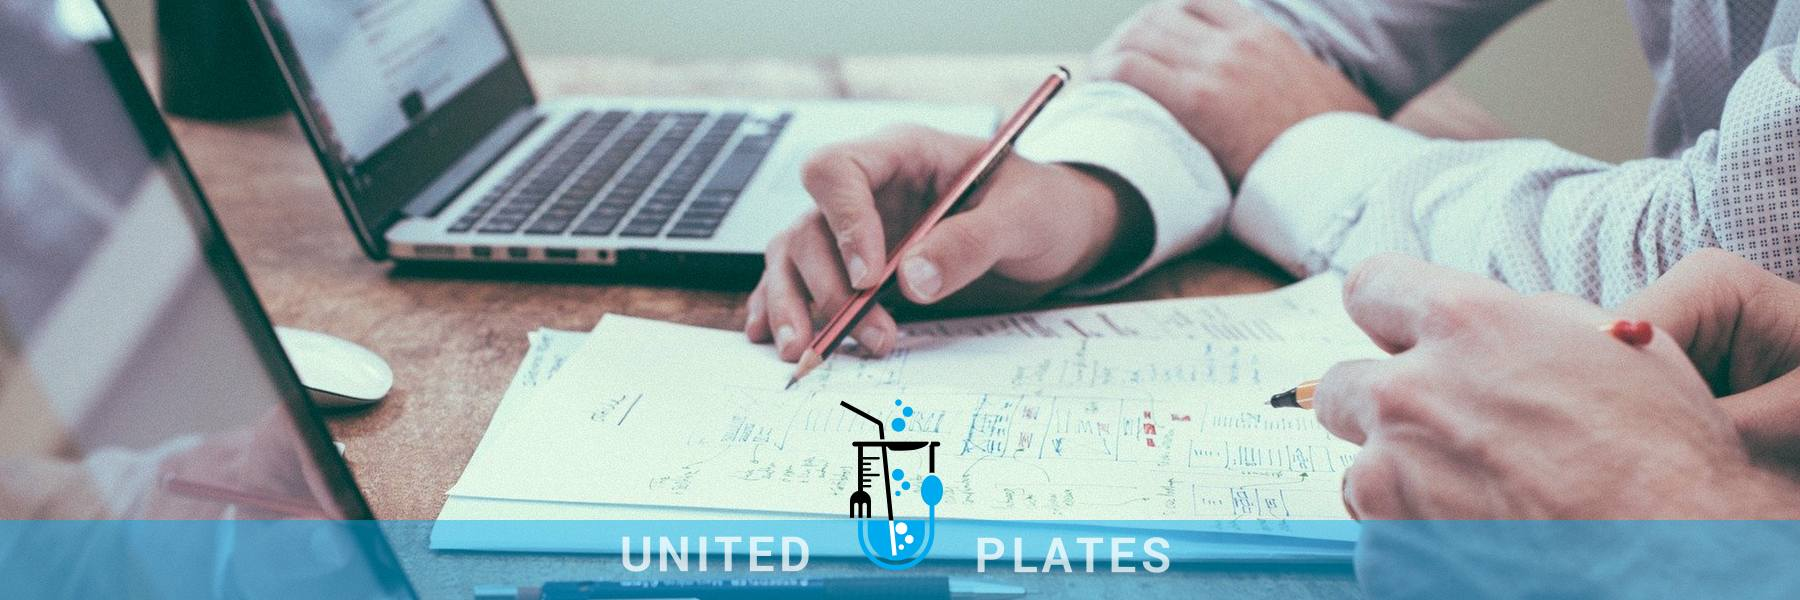 united plates comprehensive business support in the food industry dublin ireland